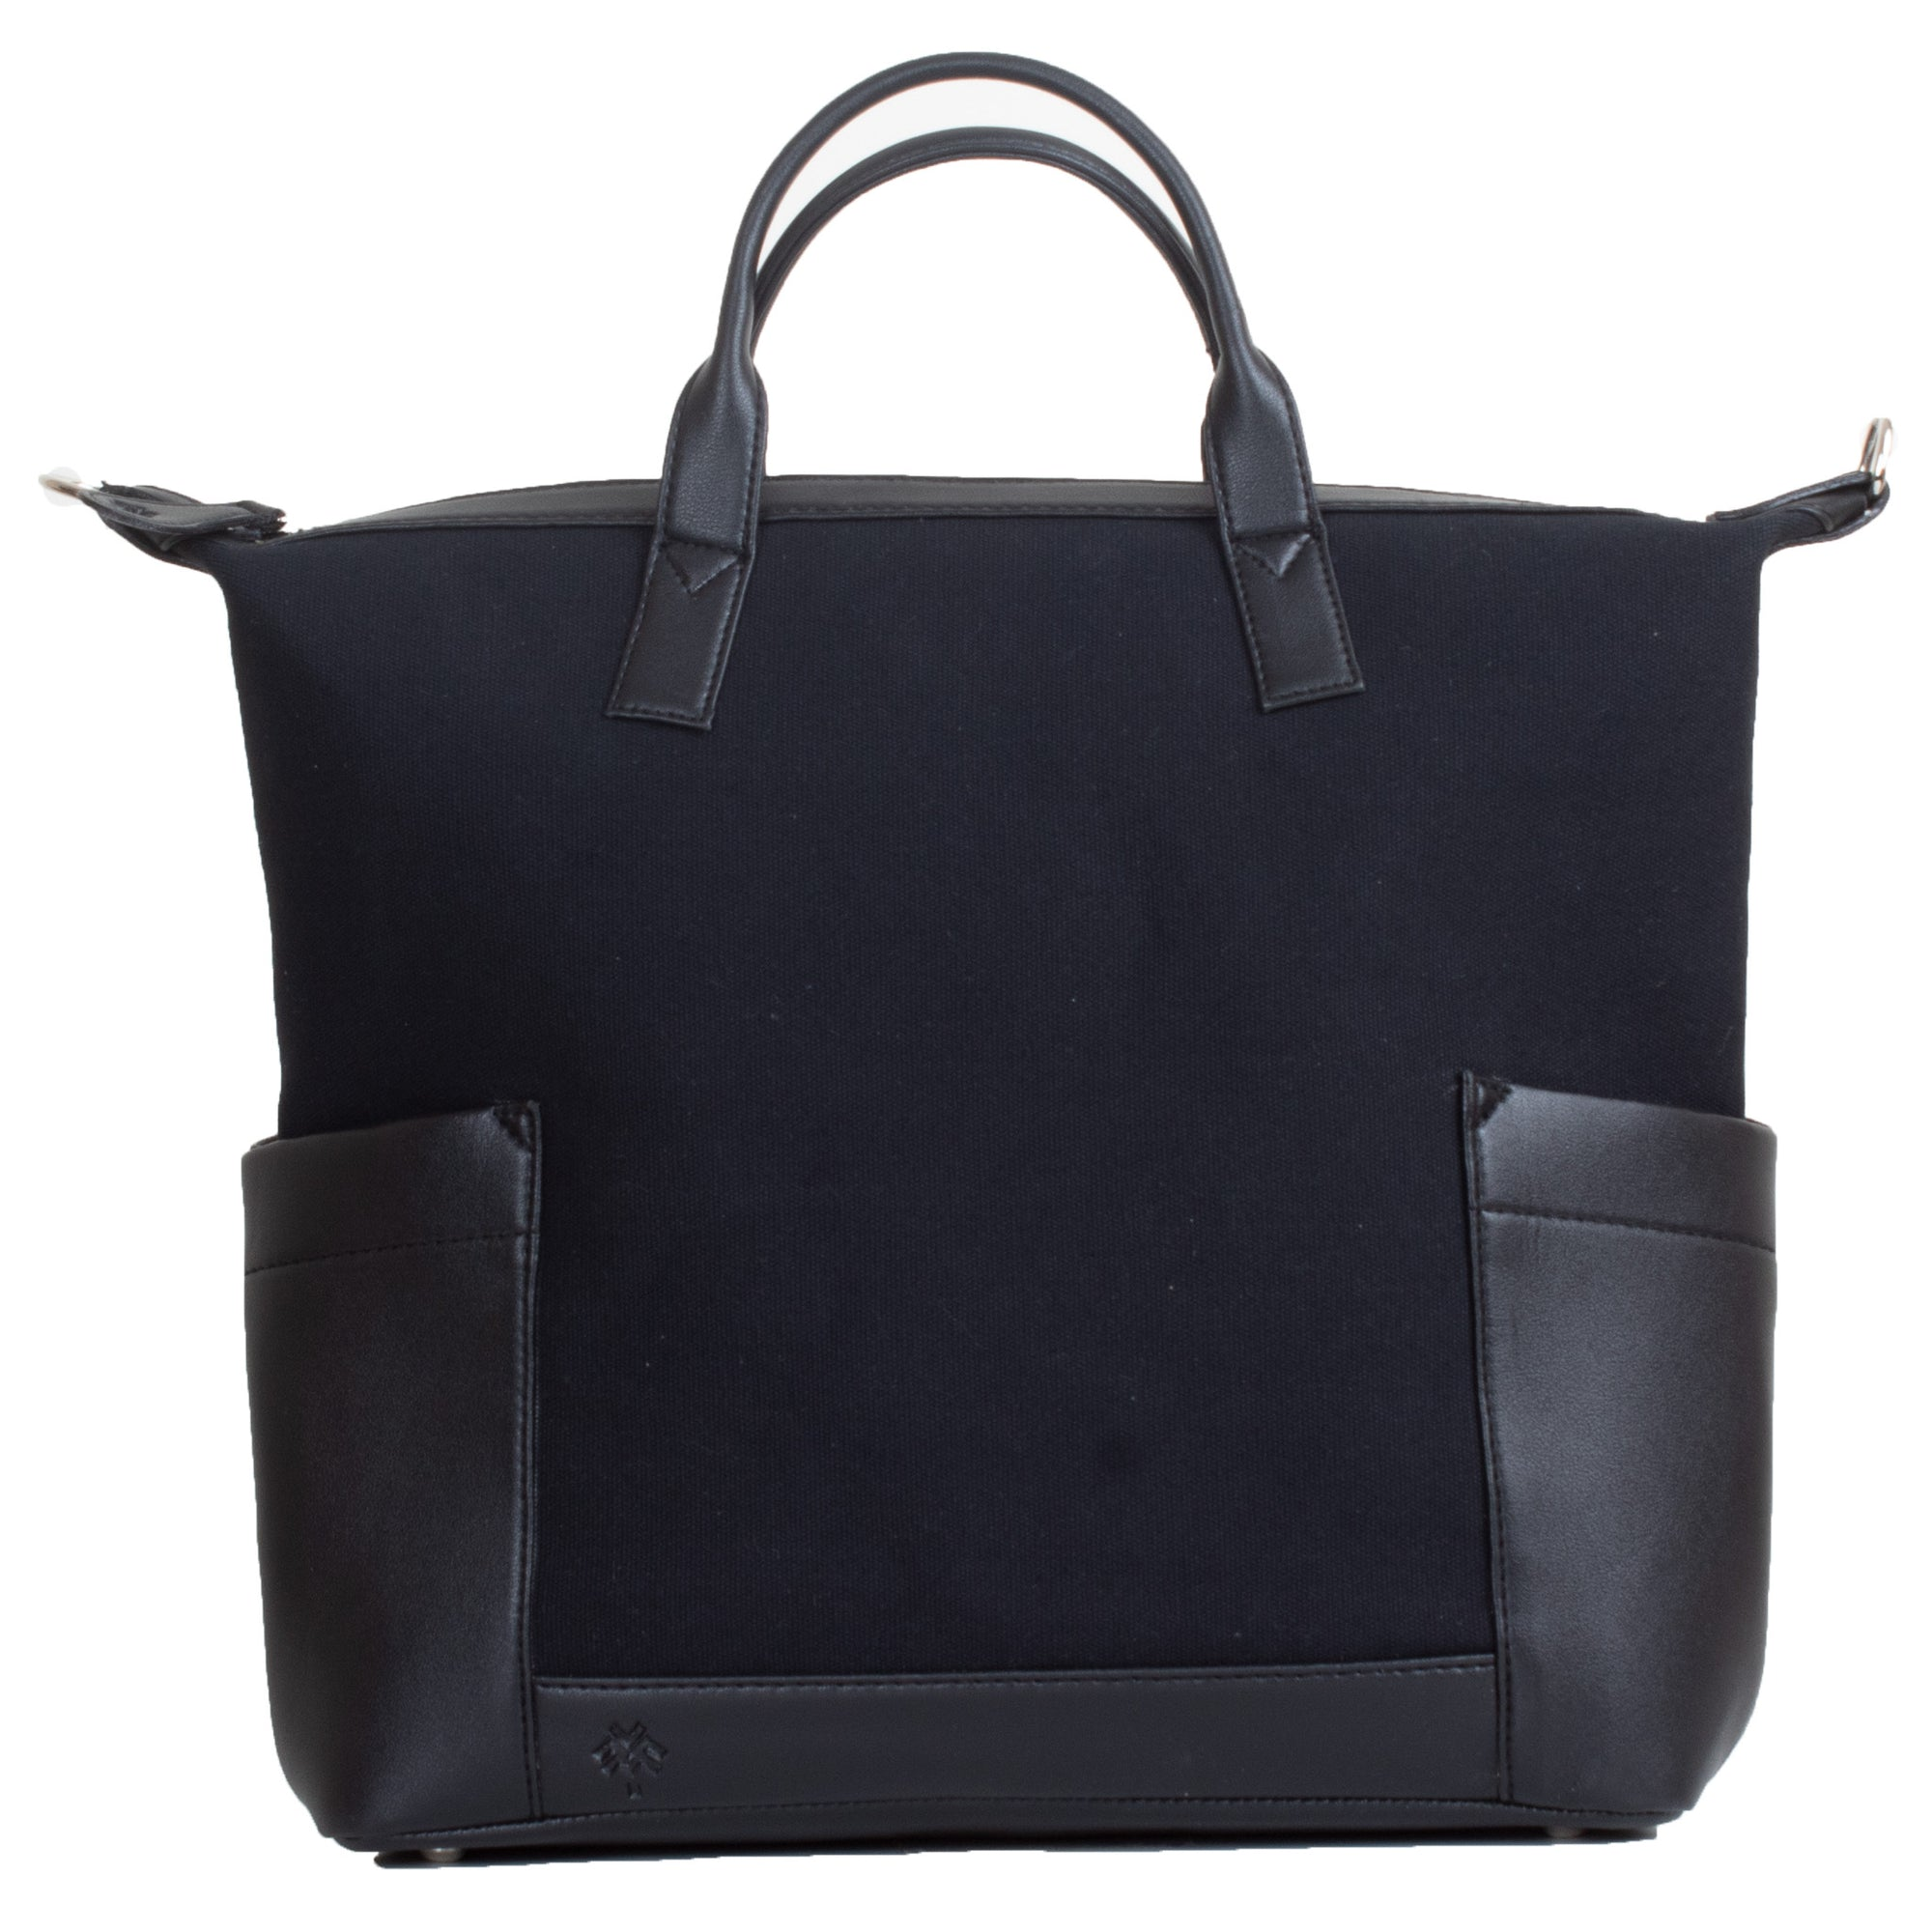 City Bag Black